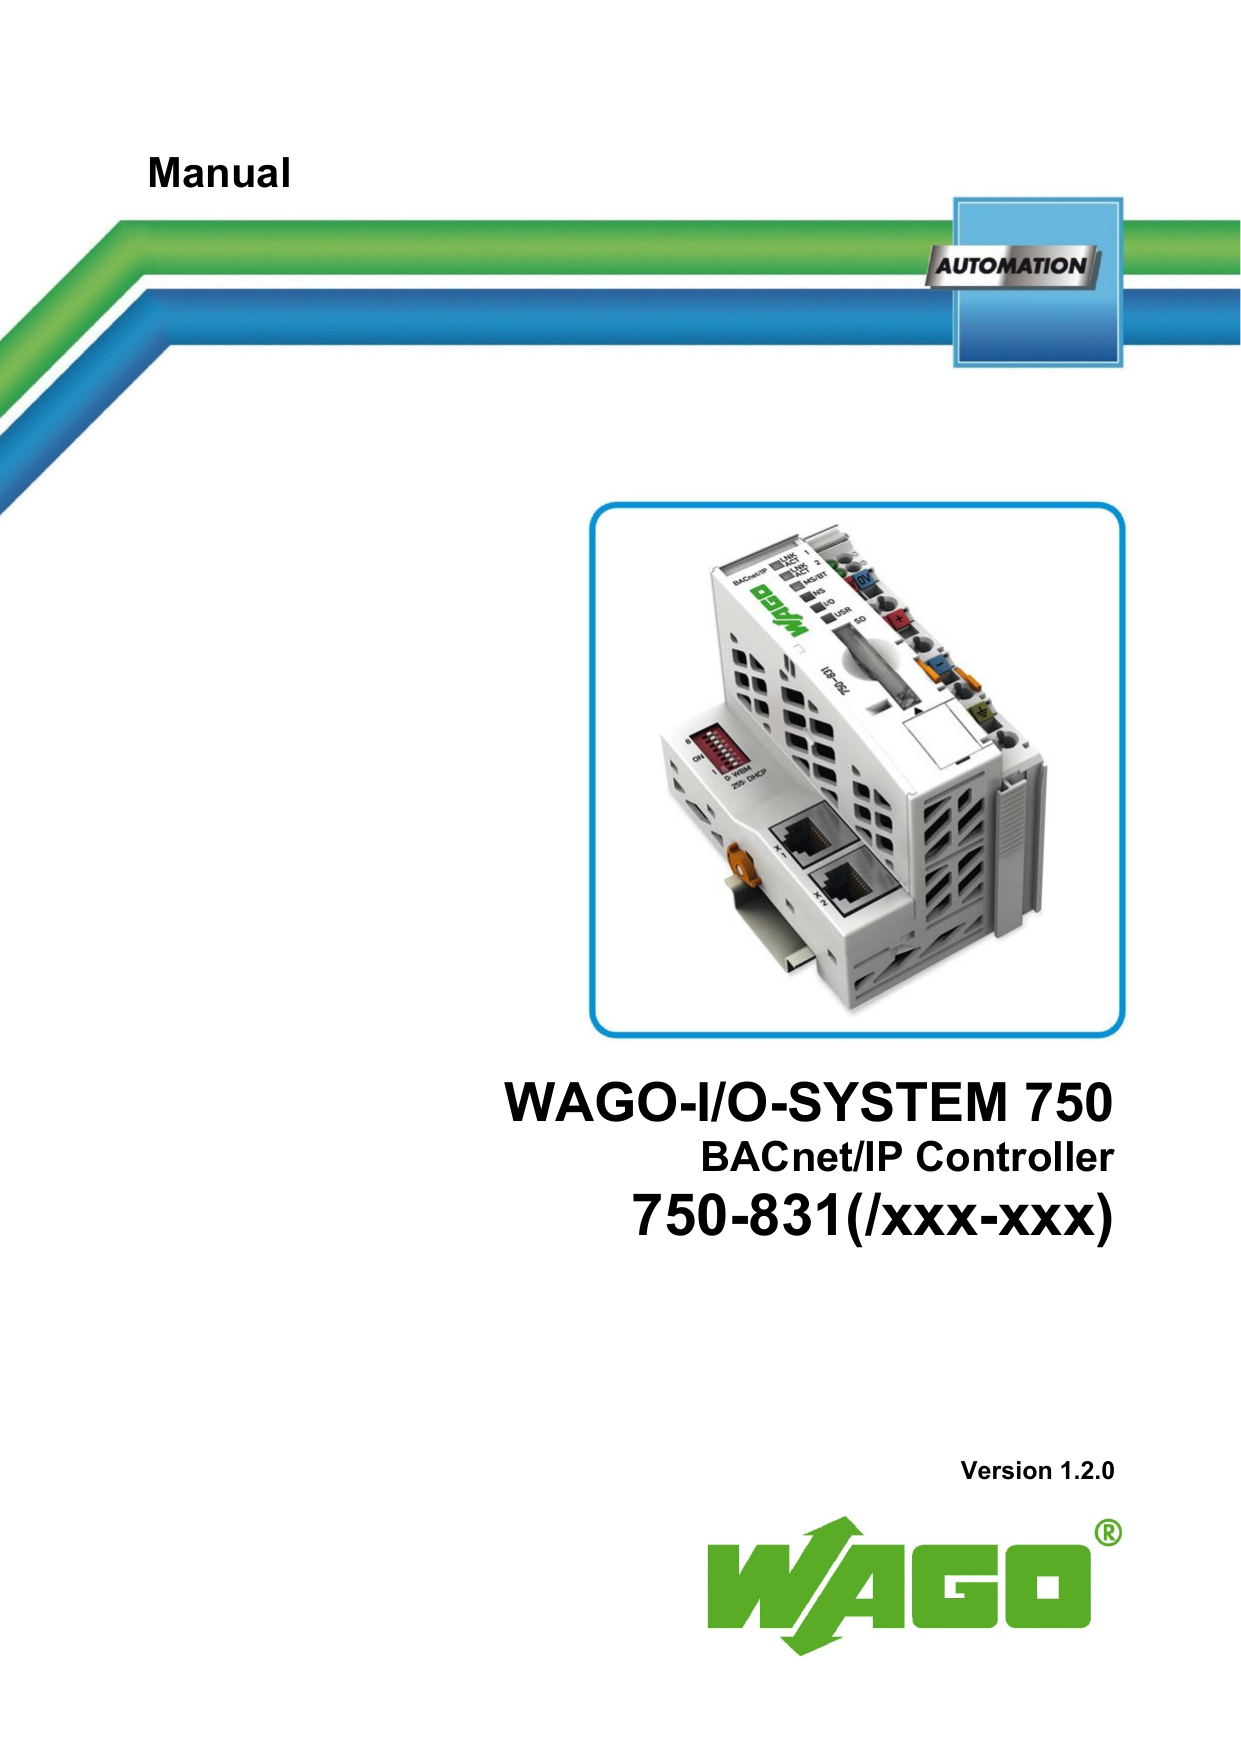 750-831(/-) Wago Cable Wiring Diagram on cable harness diagram, audio cable diagram, ethernet cable diagram, cable installation diagram, cable transmission diagram, cable connectors diagram, cable schematic diagram, cable splitter diagram, low voltage diagram, cable tv hookup diagram, cable pinout diagram, cable block diagram, component cable diagram, cross cable diagram, cable internet setup, cat cable diagram, cable design diagram, cable assembly diagram, cable connection diagram, cable modem hookup diagram,